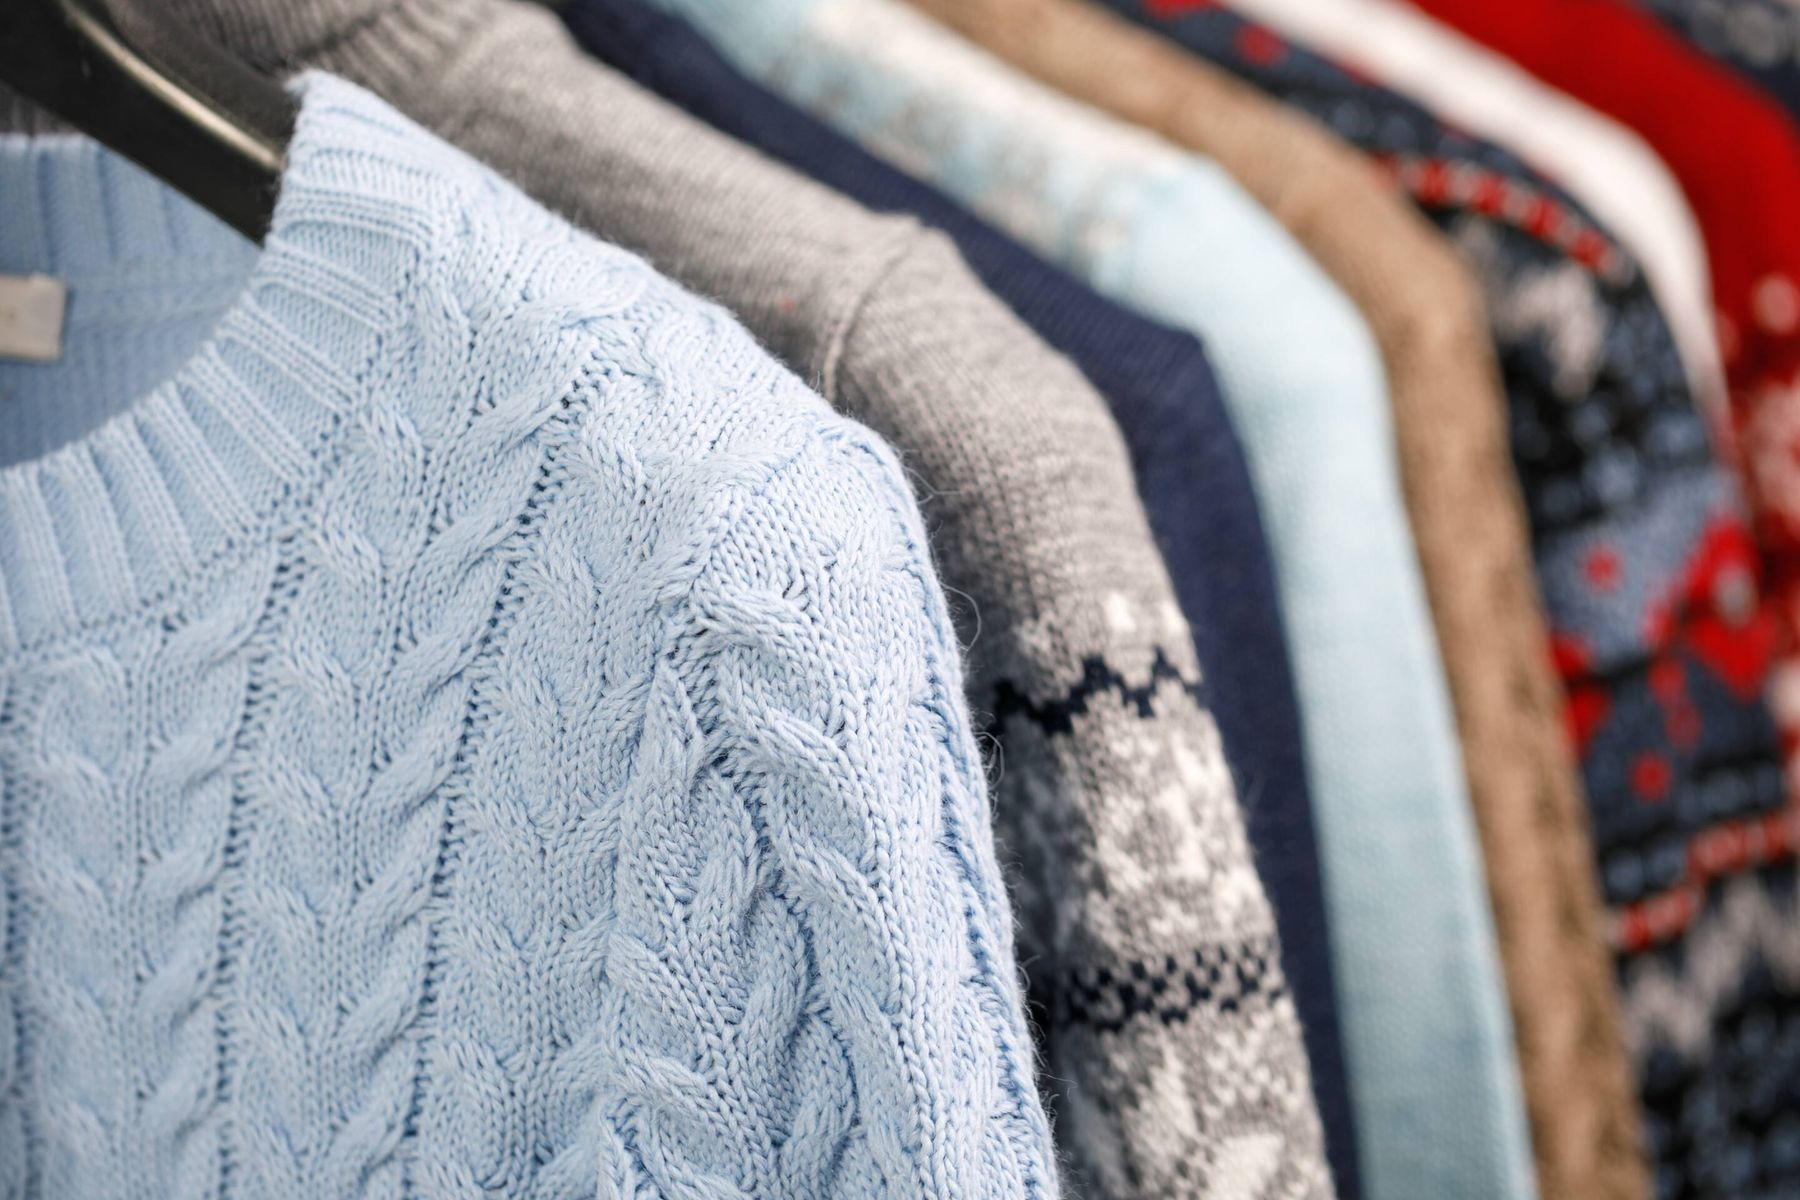 An Easy Method to Store Your Woollen Sweaters and Cardigans